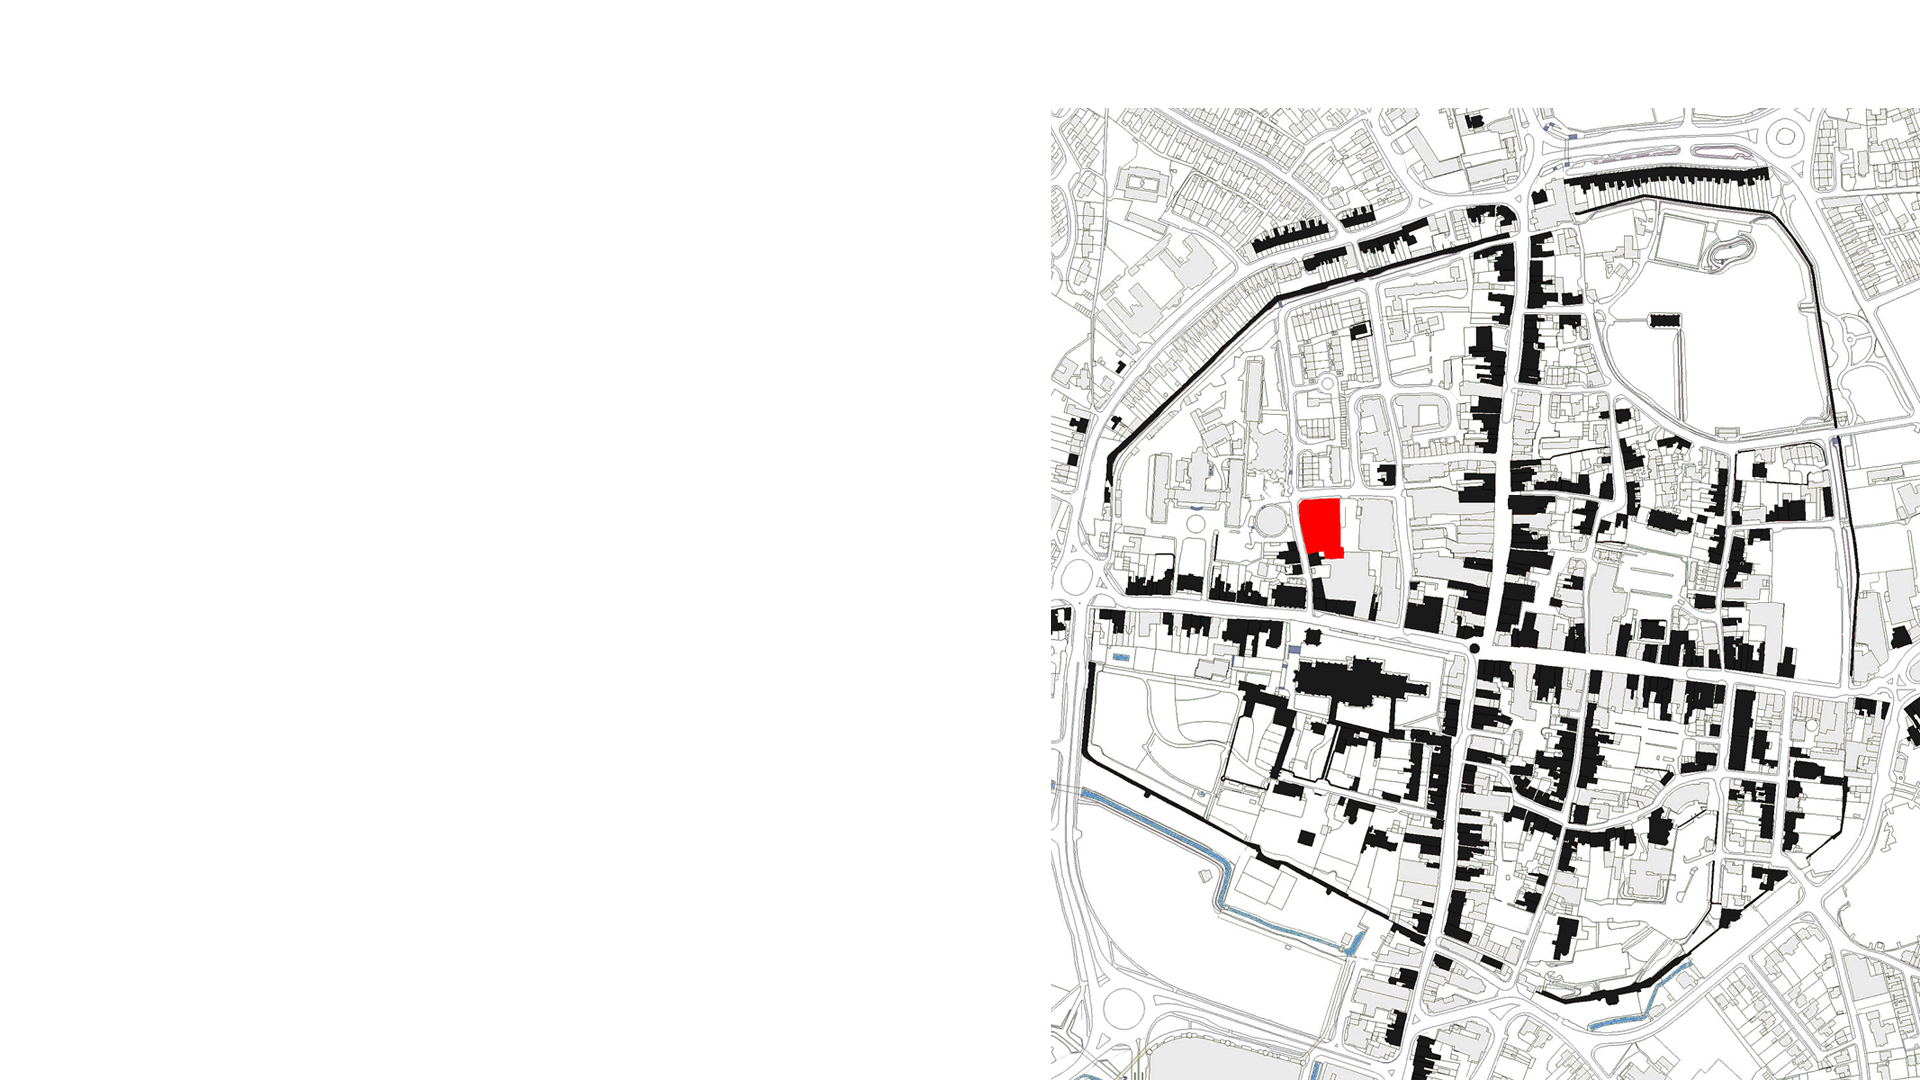 City plan showing the Novium Museum located in red